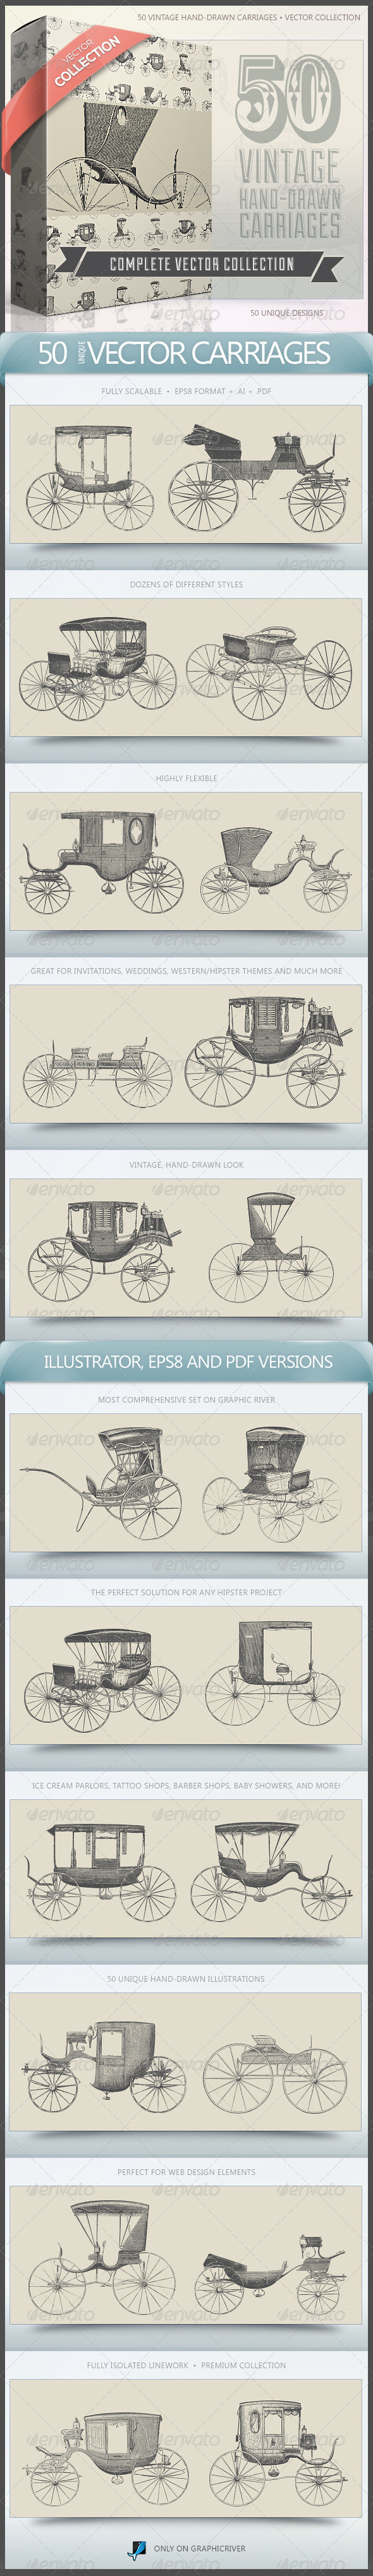 50 Vintage Hand-Drawn Carriages Collection - Man-made objects Objects